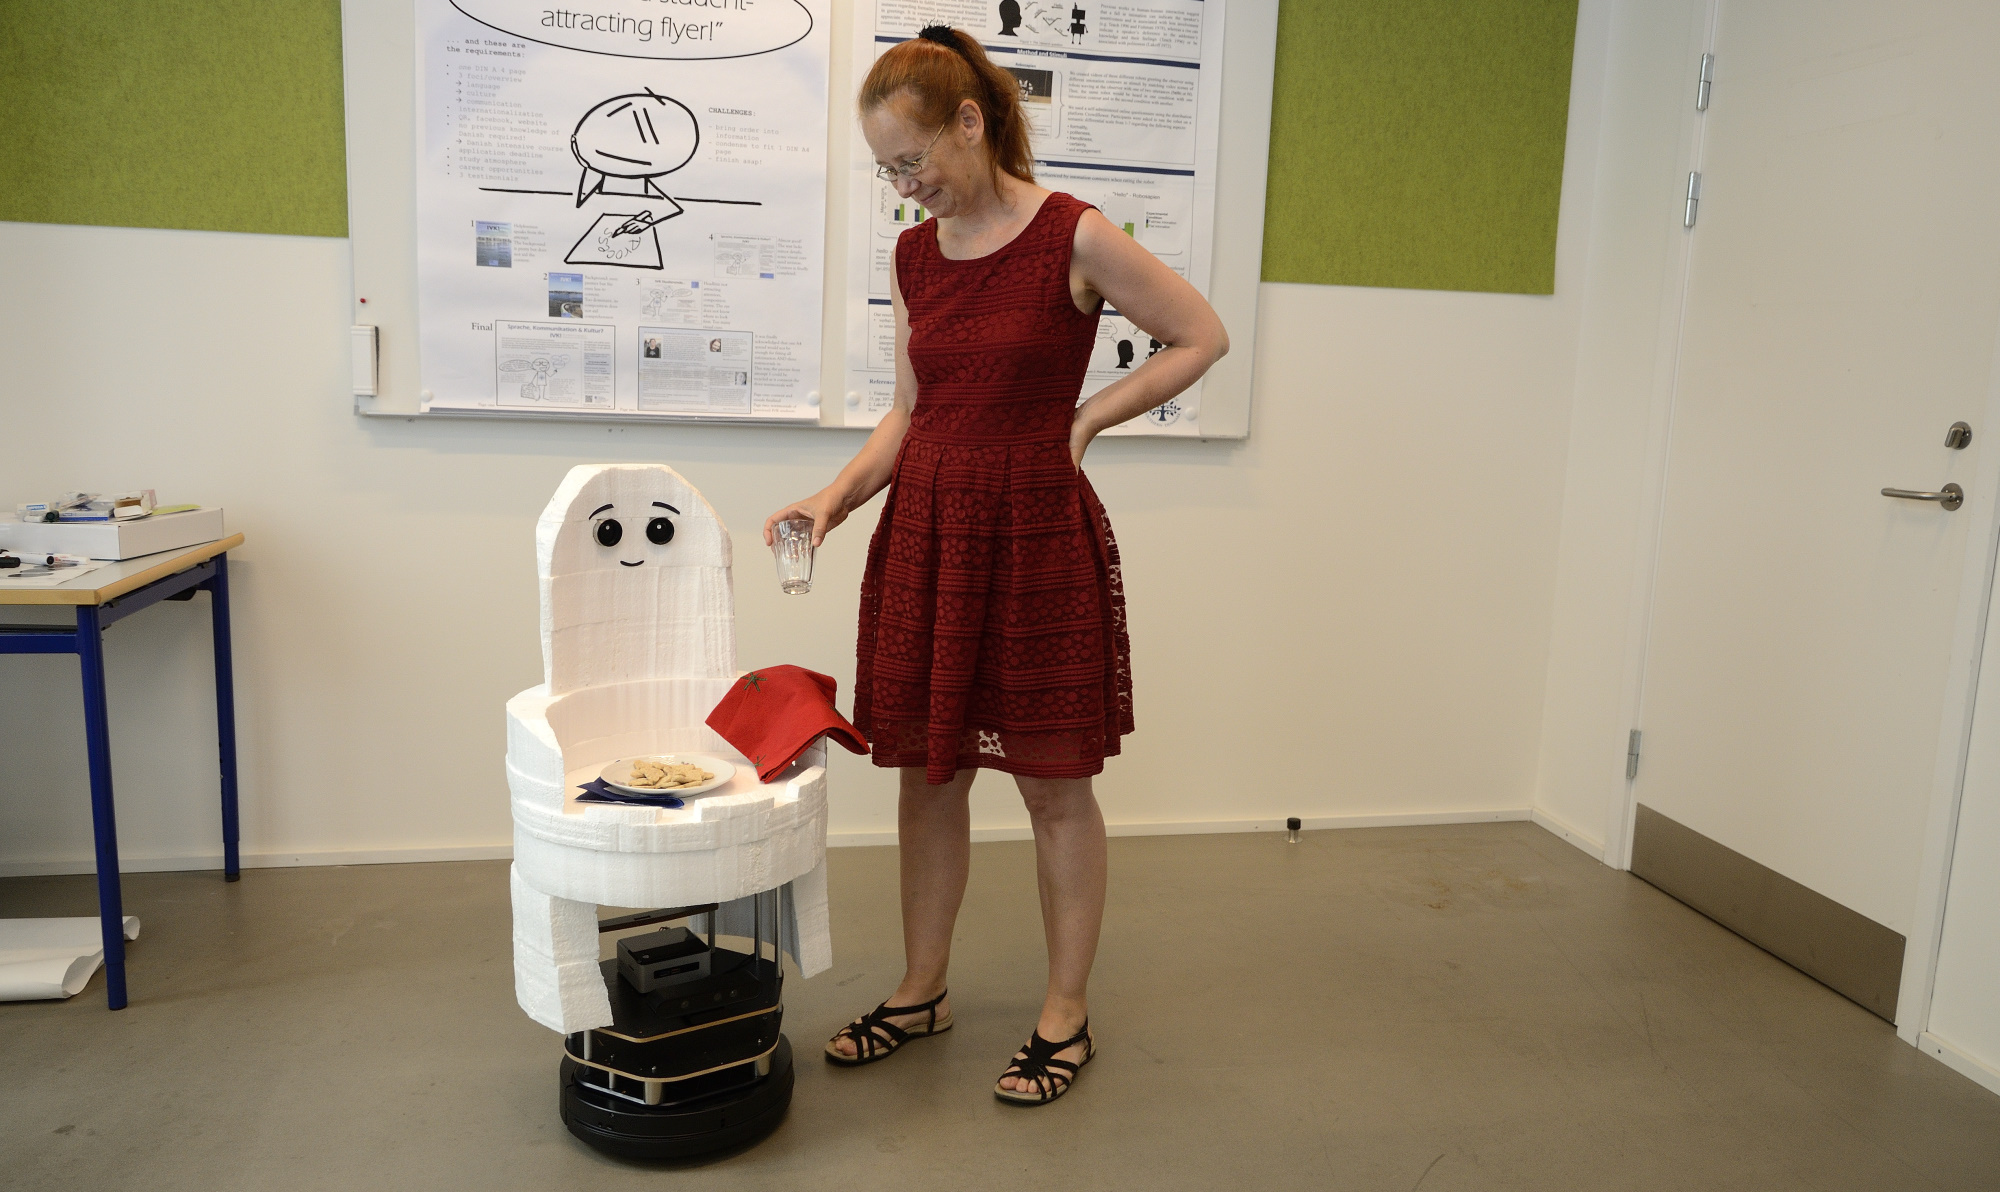 Casper Turtlebot, presented by Kerstin Fischer